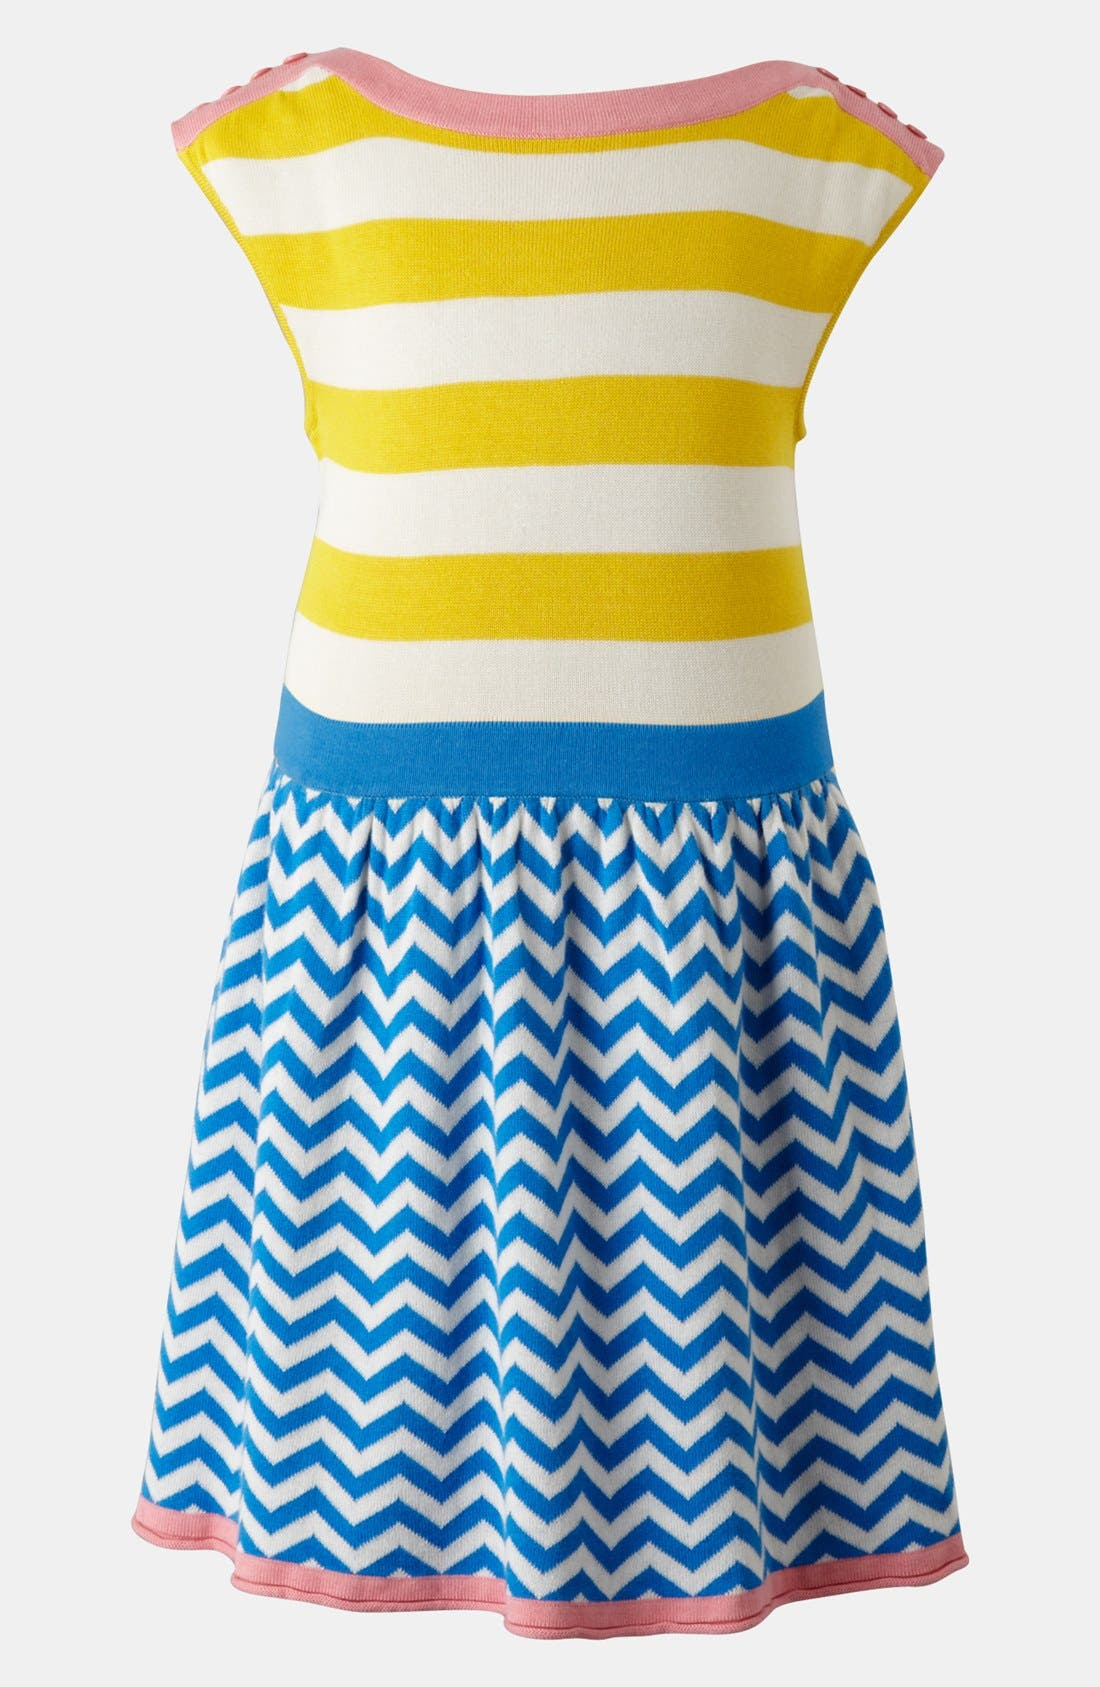 Alternate Image 1 Selected - Mini Boden 'Colorful Summer' Knit Dress (Toddler)